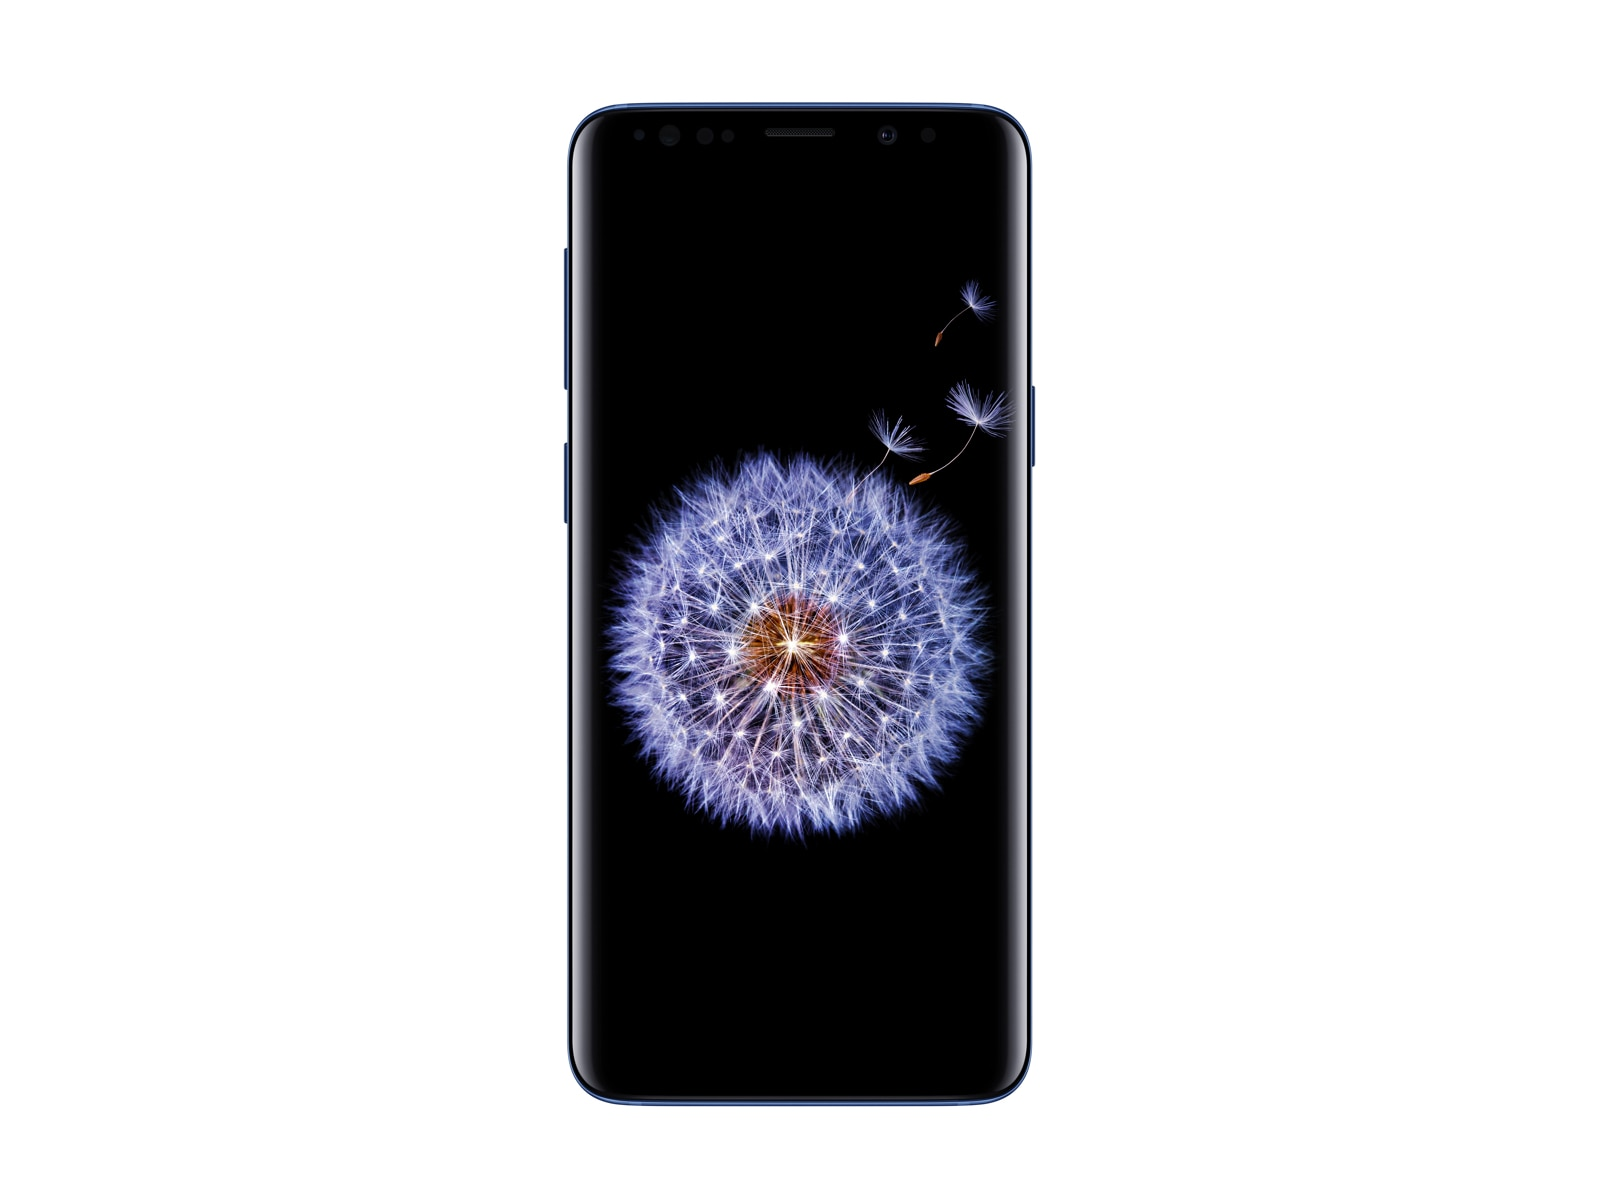 Thumbnail image of Galaxy S9 64GB (AT&T)